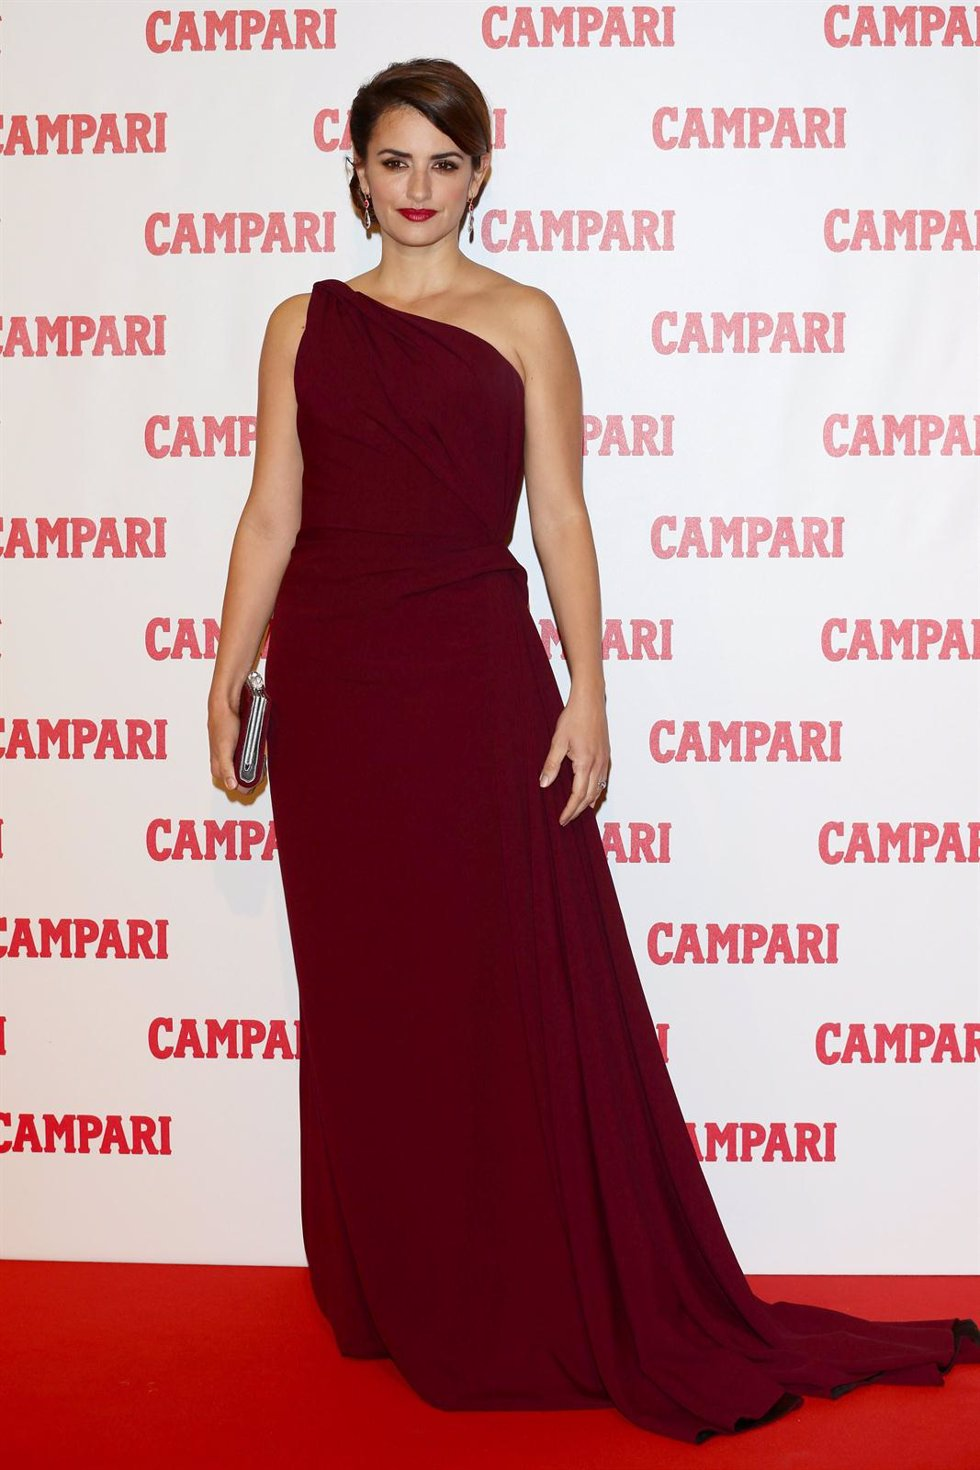 Enter caption here at Campari Headquarters on November 13, 2012 in Milan, Italy.